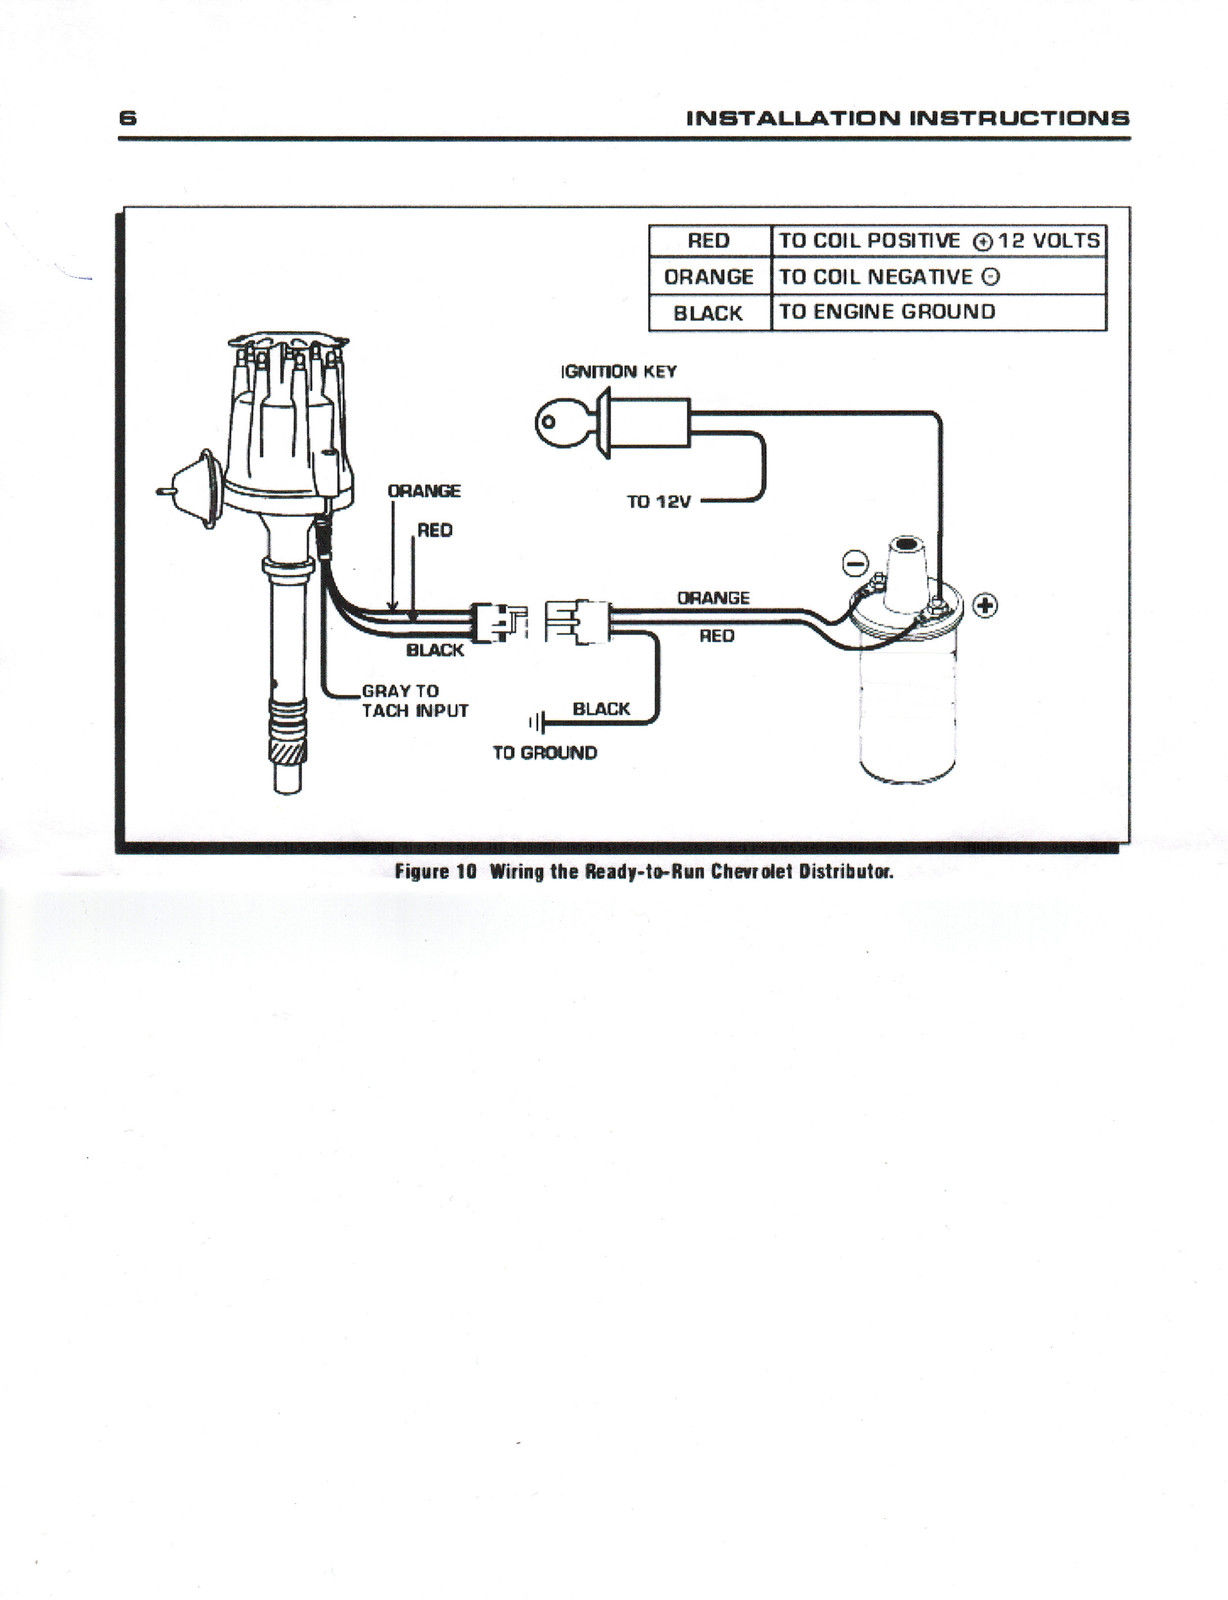 [DIAGRAM_38ZD]  YR_3100] Spark Plug Wiring Diagram For Chevy Small Block Download Diagram | Big Block Chevy Ignition Wiring |  | Ariot Ultr Mohammedshrine Librar Wiring 101